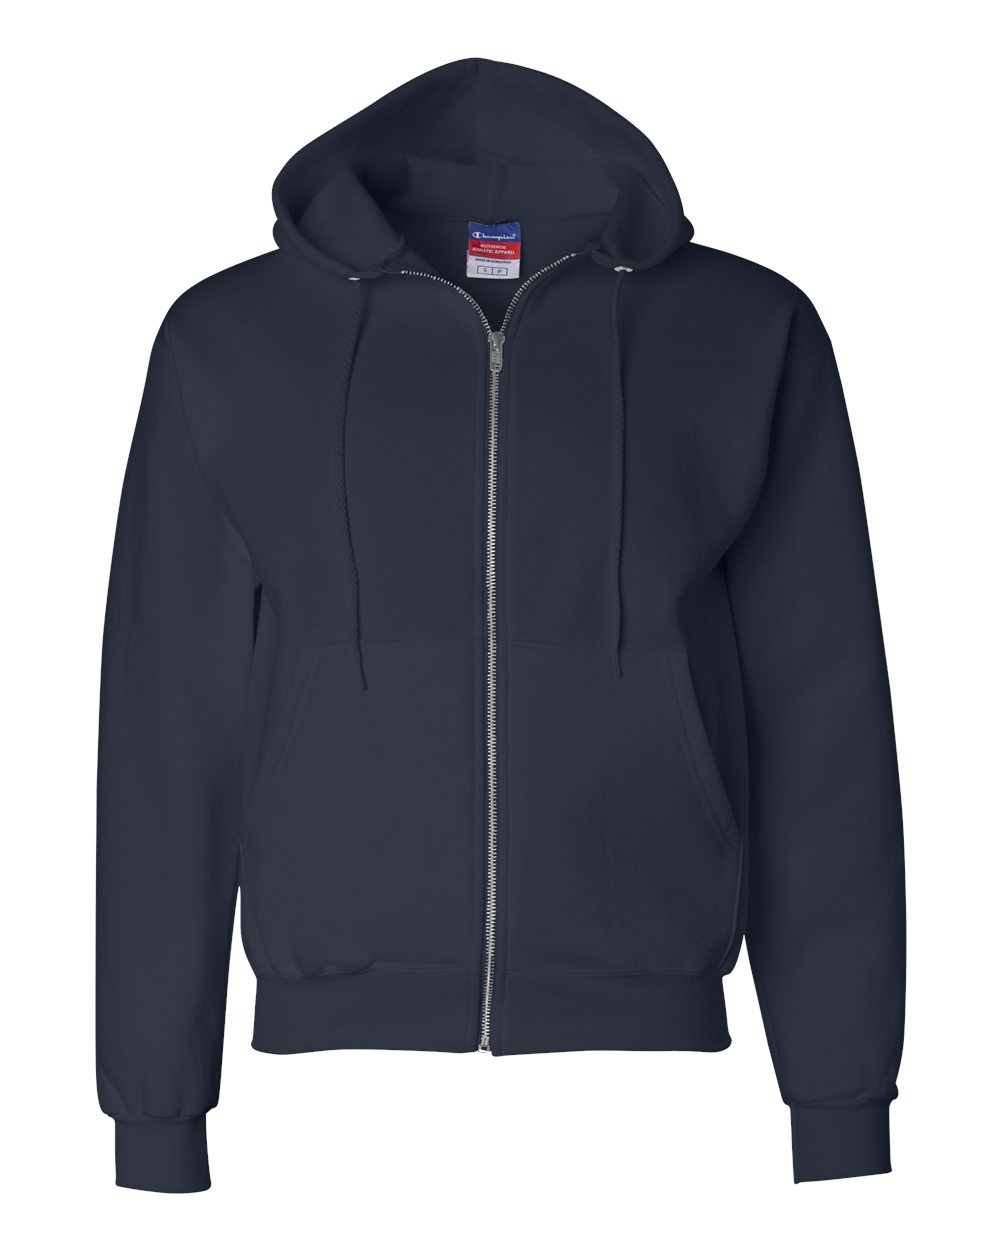 Champion Double Dry Eco Full-Zip Hooded Sweatshirt